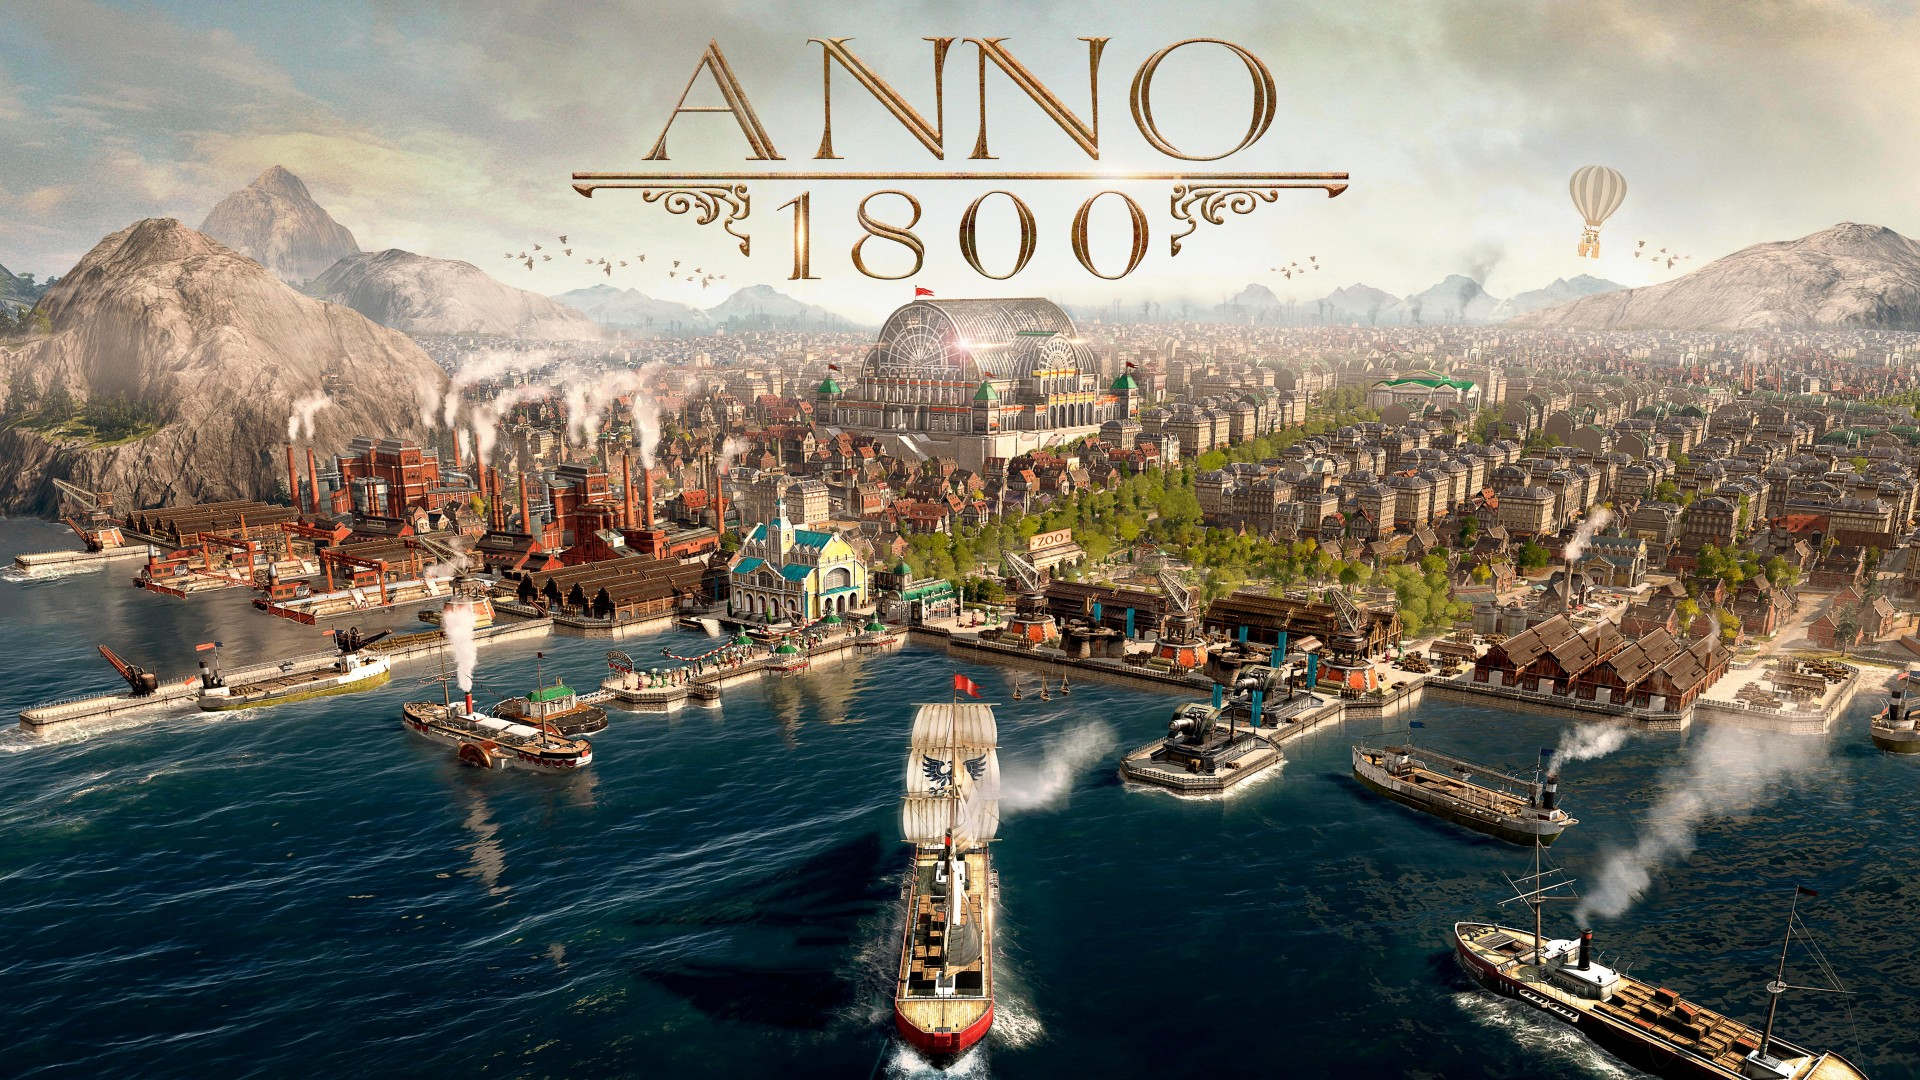 Top  Wallpapers Anno 1800 2019 Game 4k 8k Wallpapers Hd Wallpapers Id